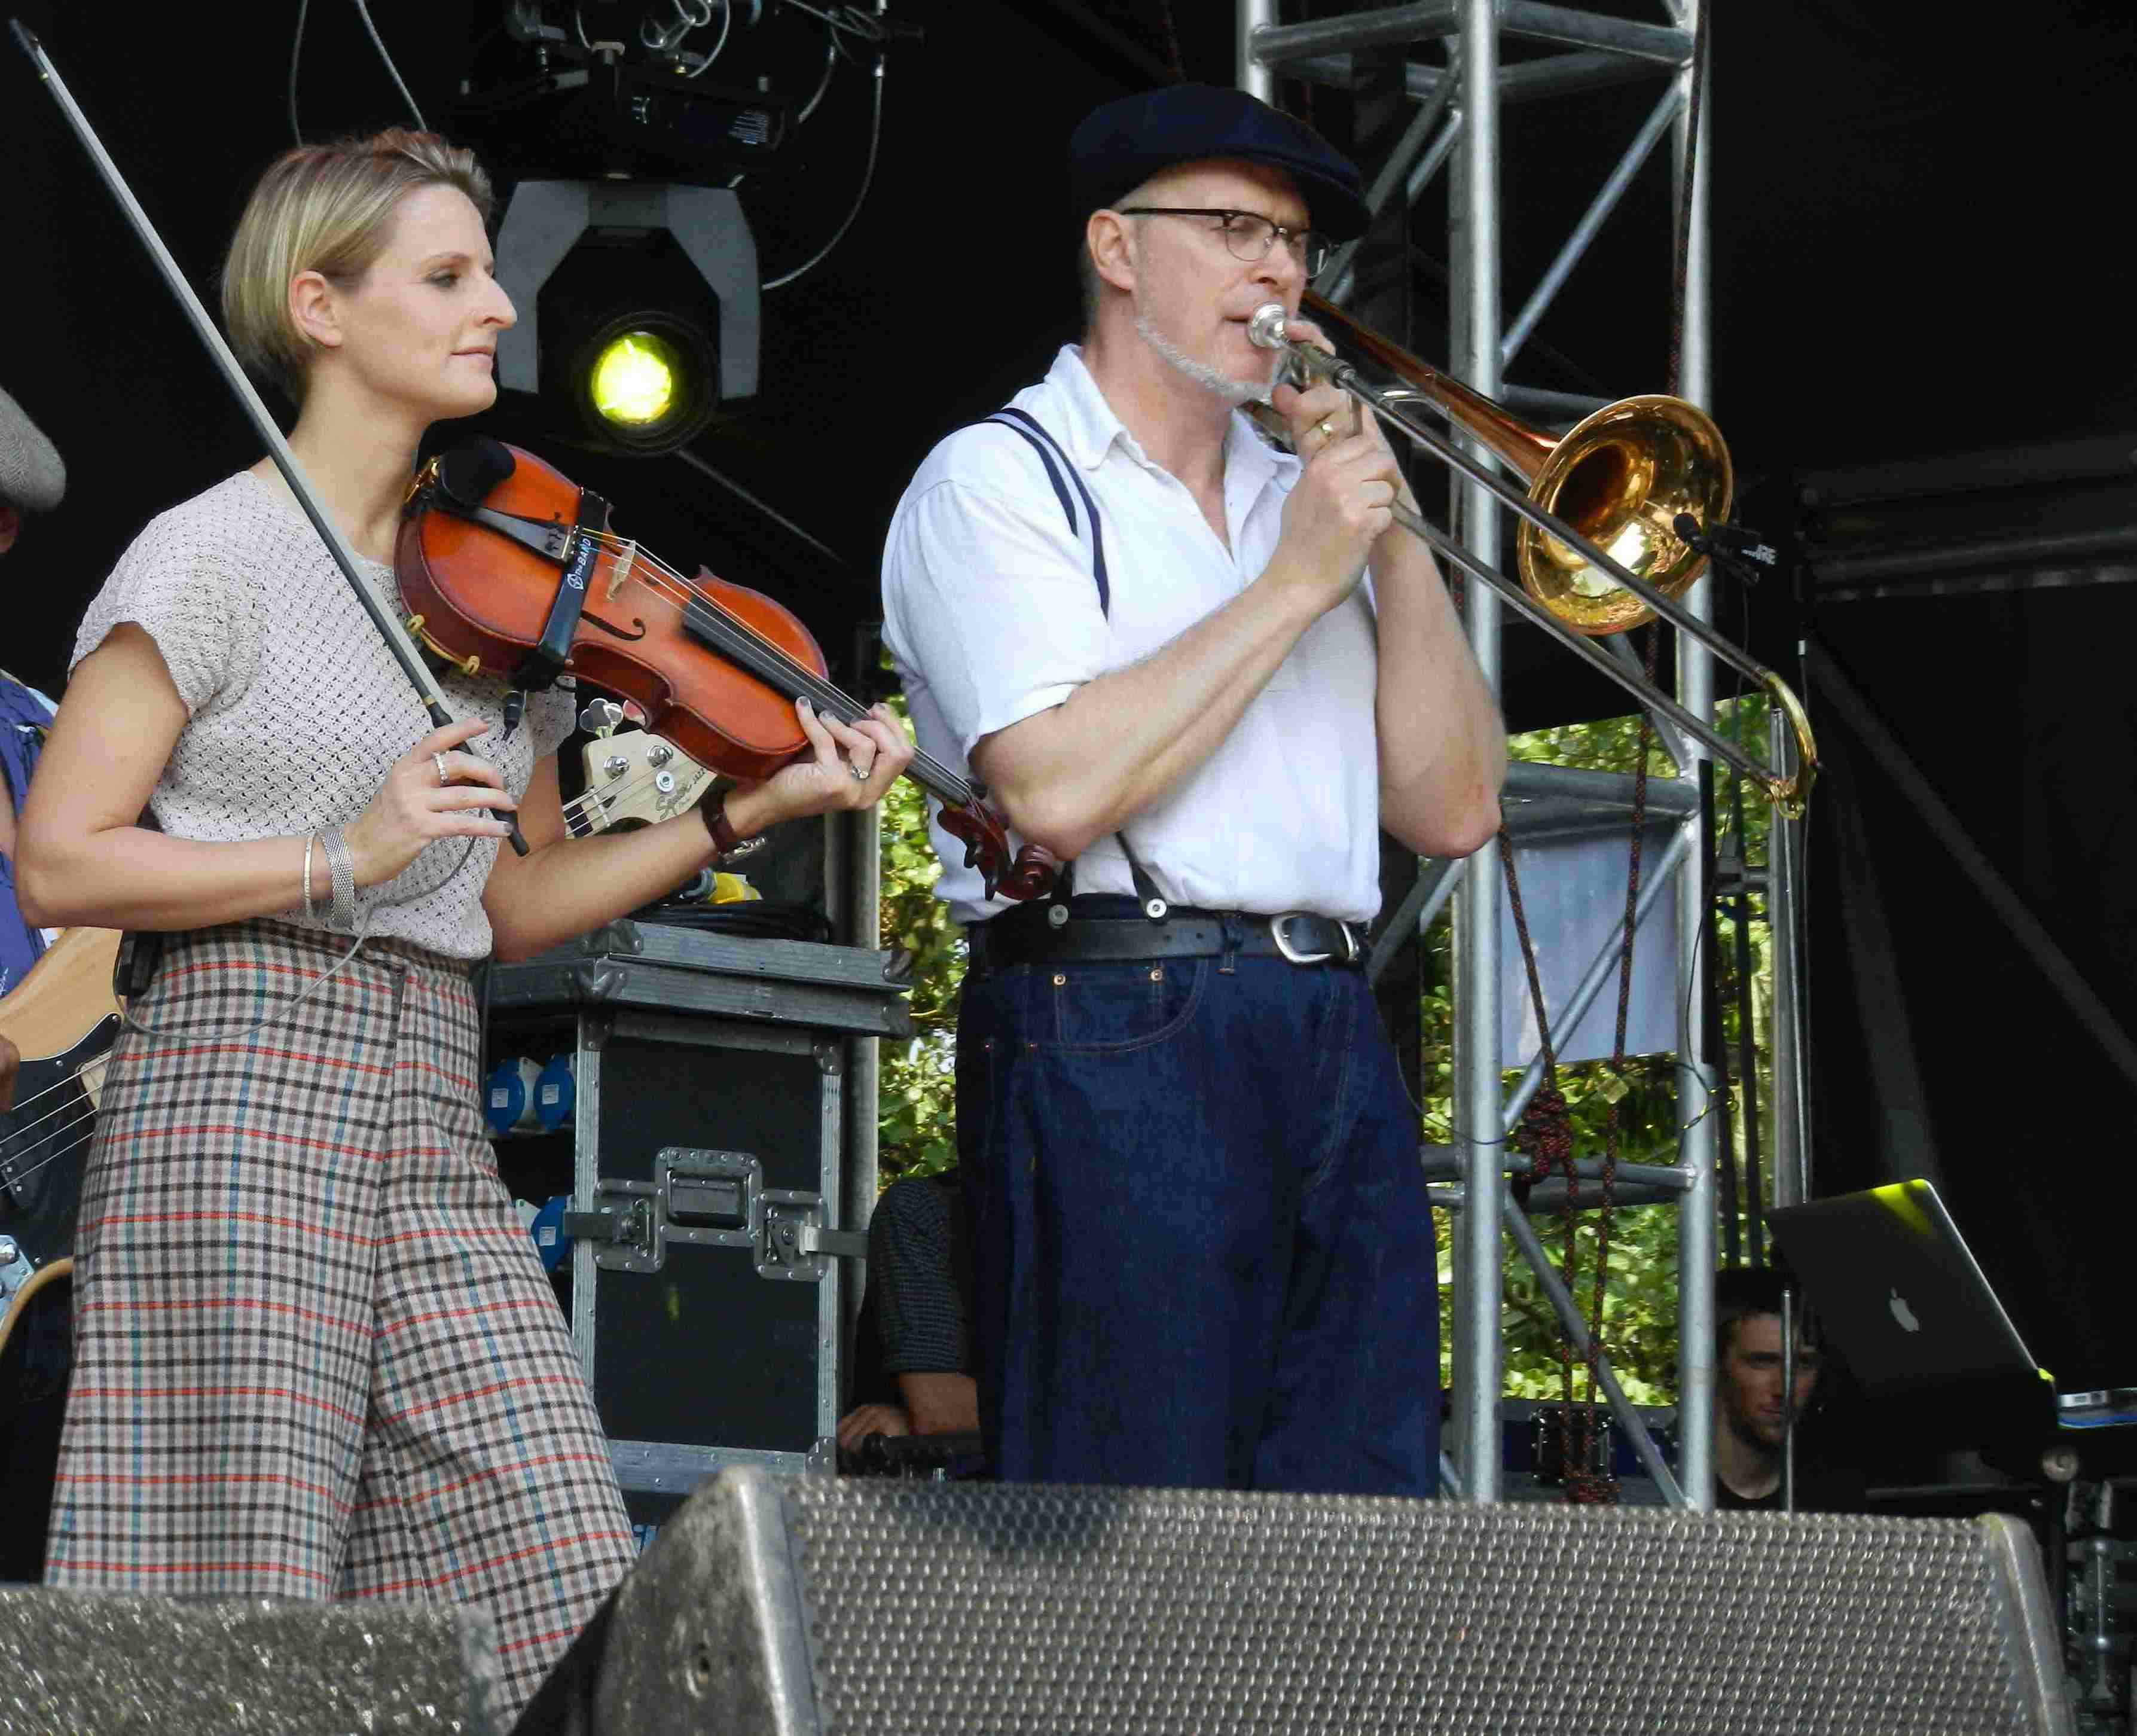 Dexys in Brisbane 2012 (Lucy, Big Jim)